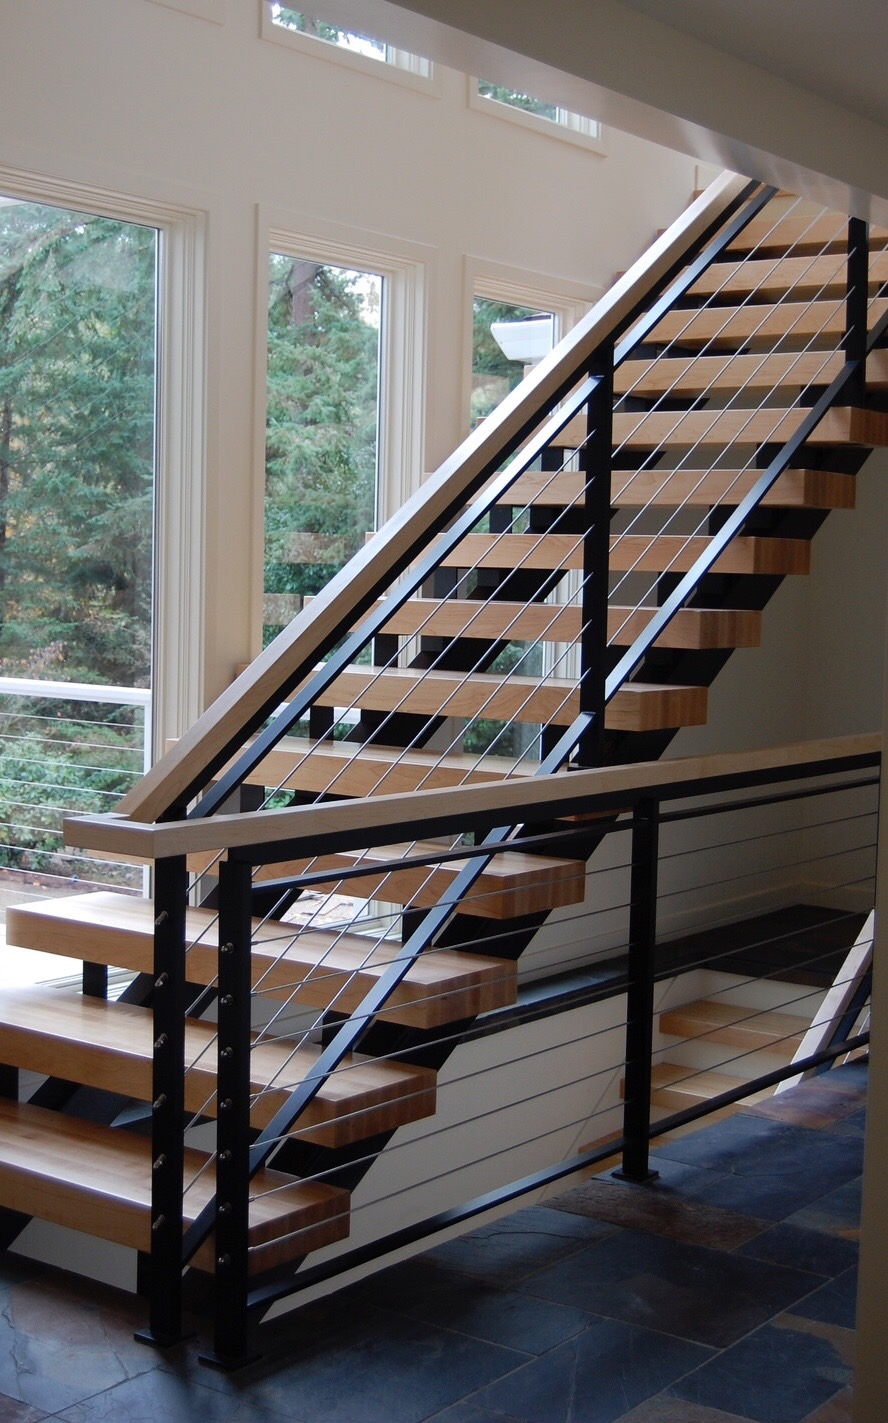 Contemporary Steel And Wood Stair Case.jpg